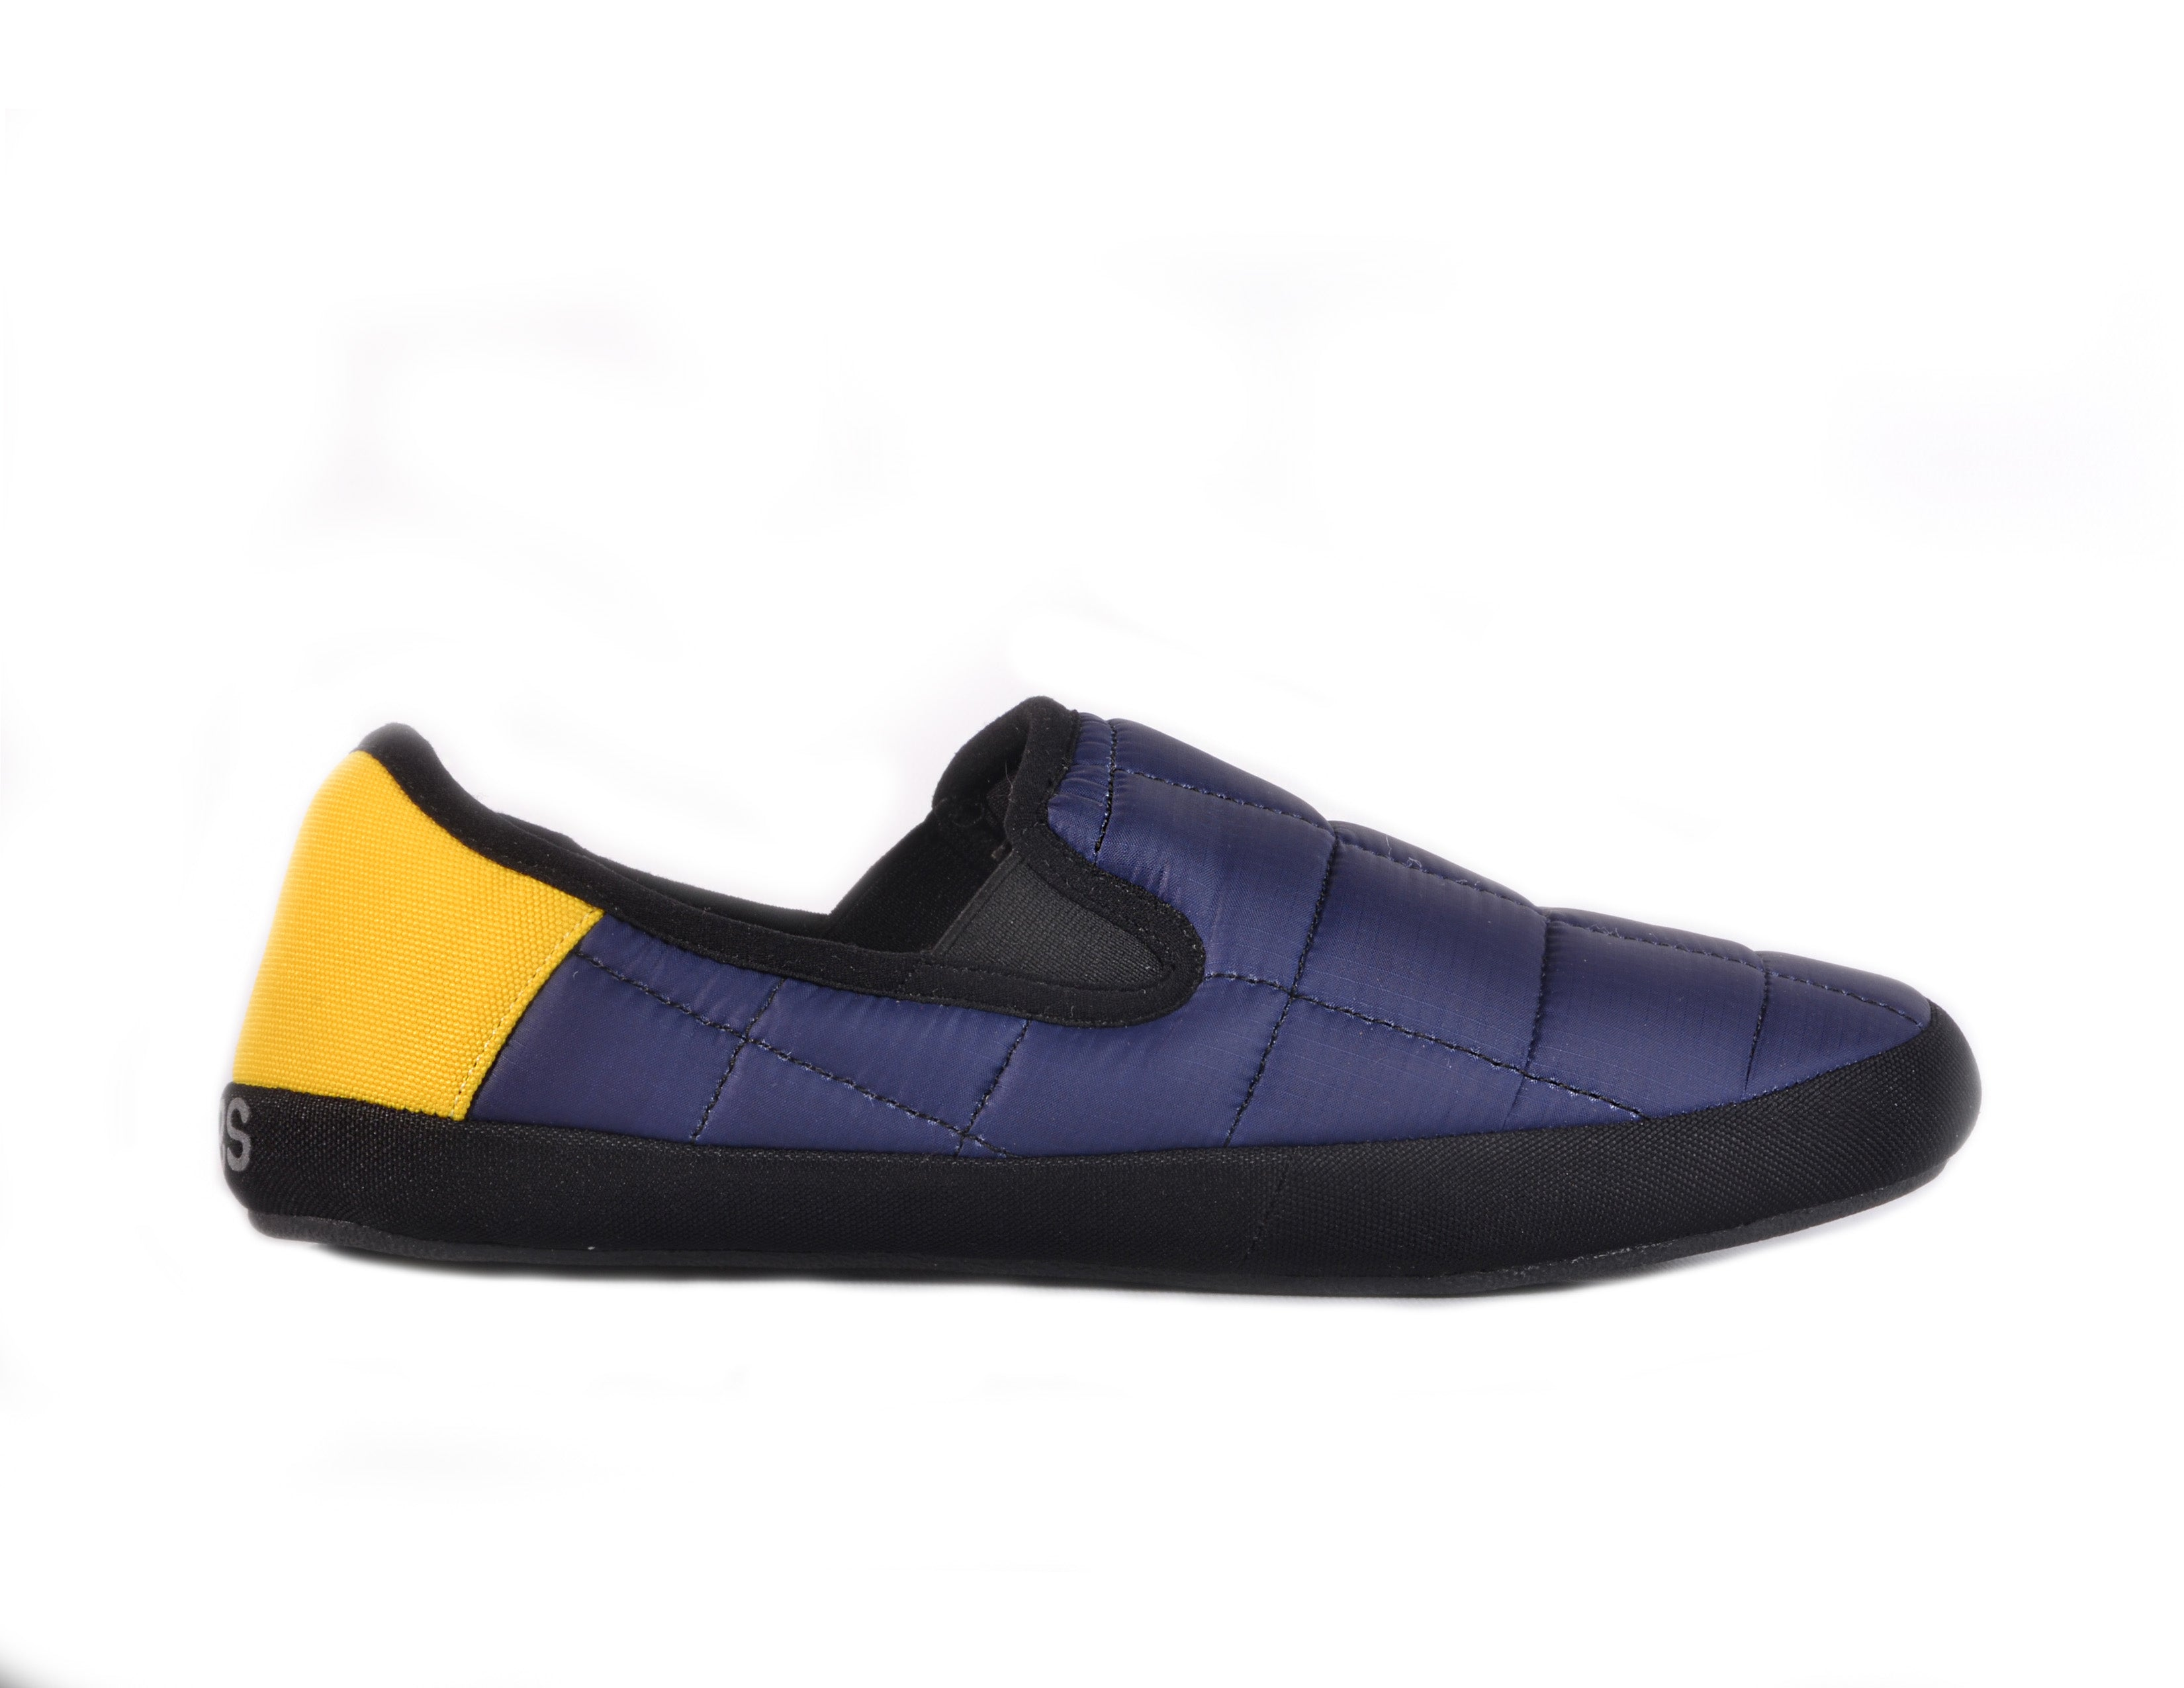 MALMOES MENS NAVY YELLOW